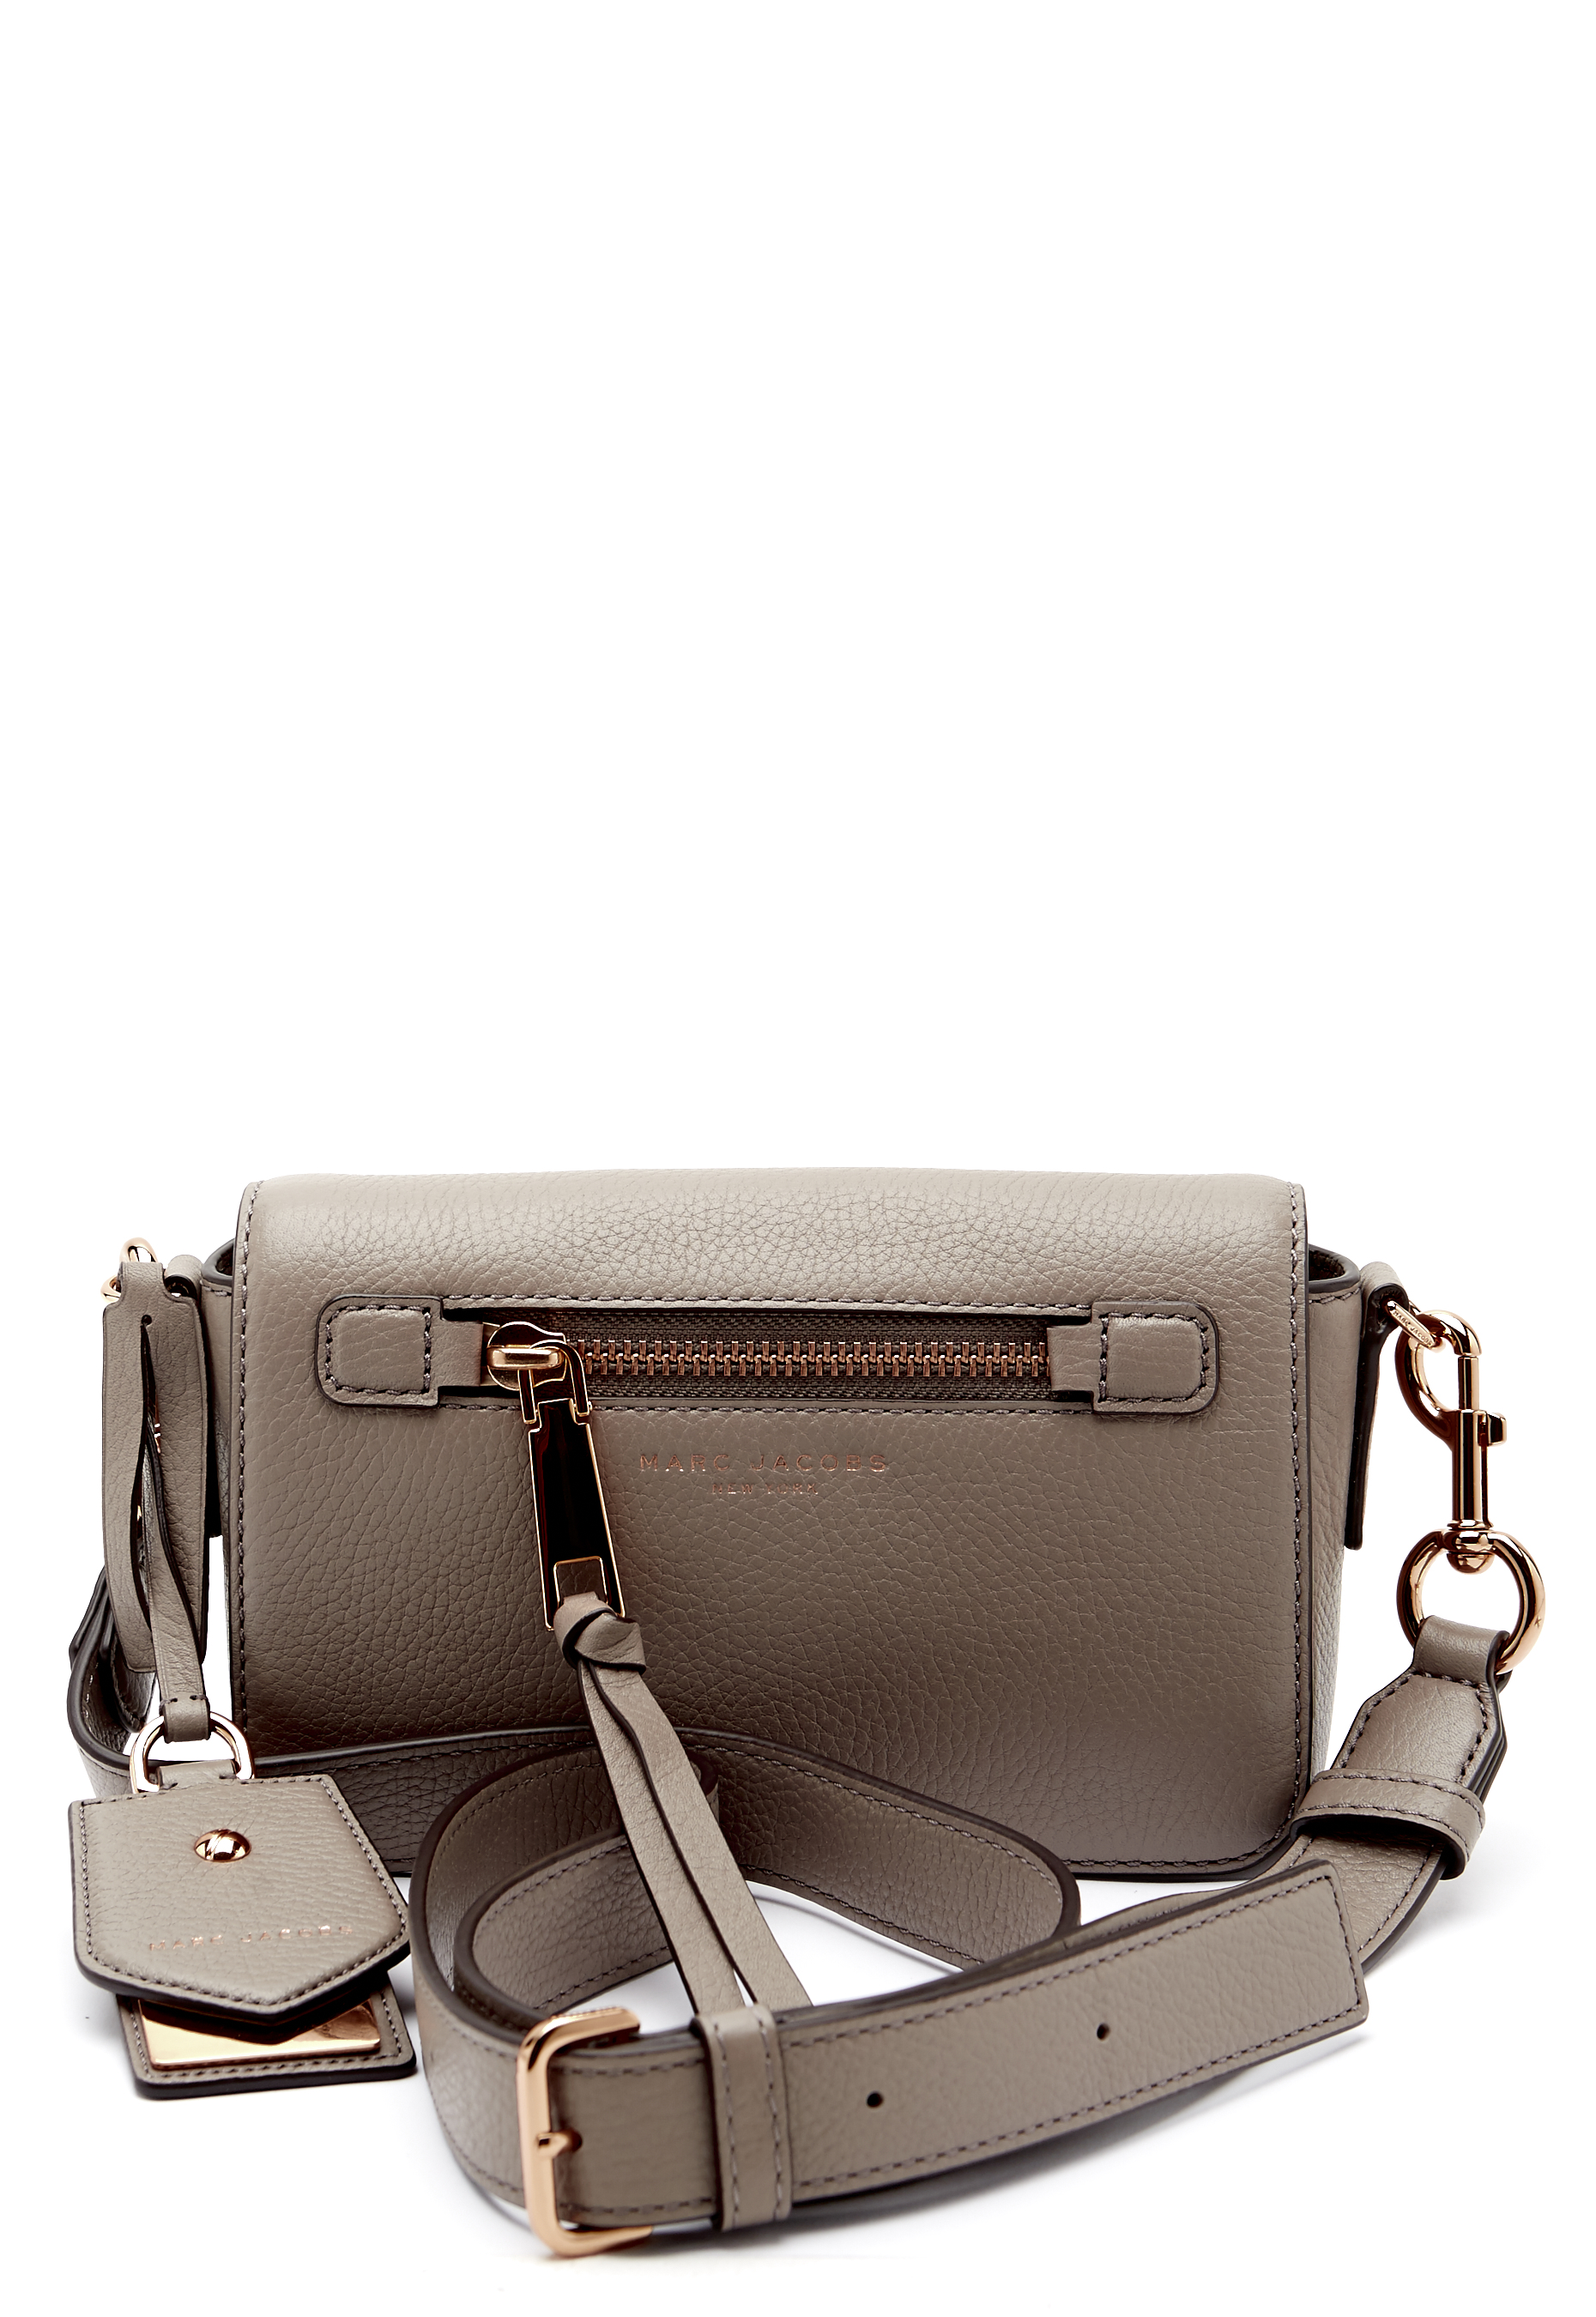 shop for official great discount clearance Marc Jacobs Recruit Crossbody Bag Mink - Bubbleroom